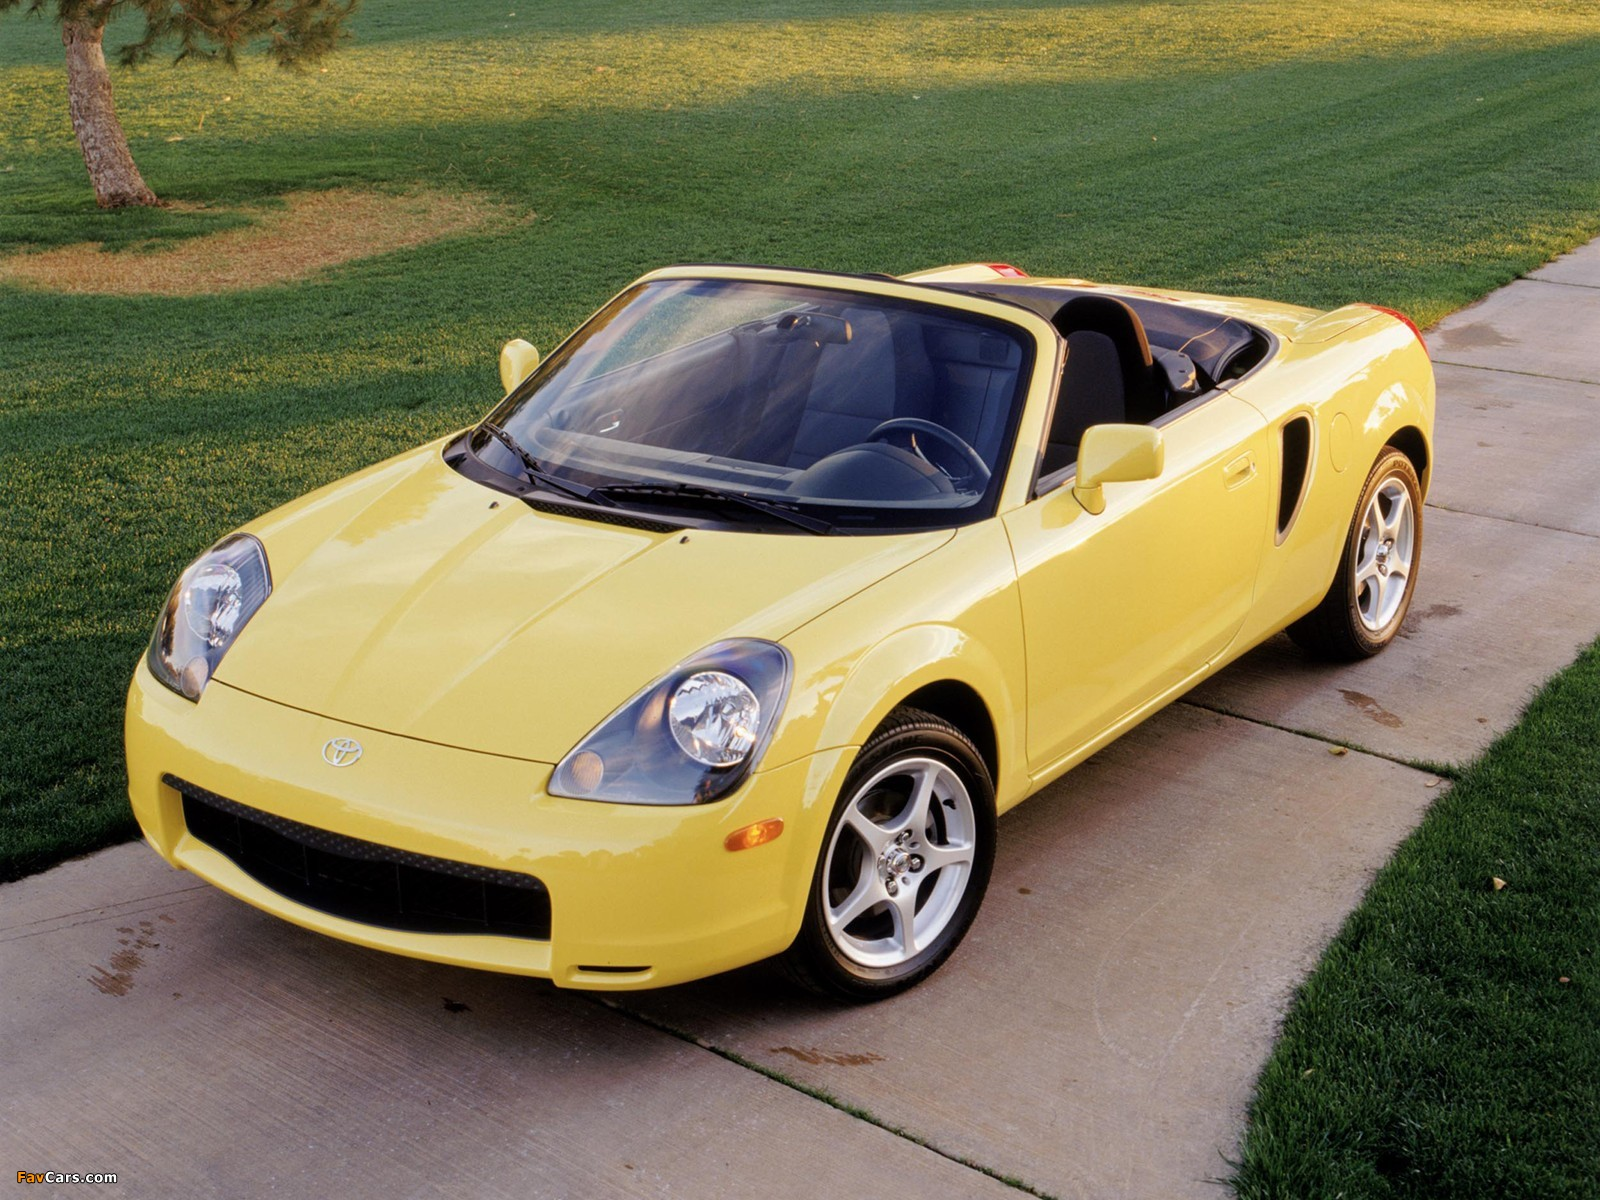 Aldl additionally Replica Ferrari together with Witze Seite 01 likewise 4139815553 furthermore 3880 2003 Toyota Mr2 Spyder 4. on mr2